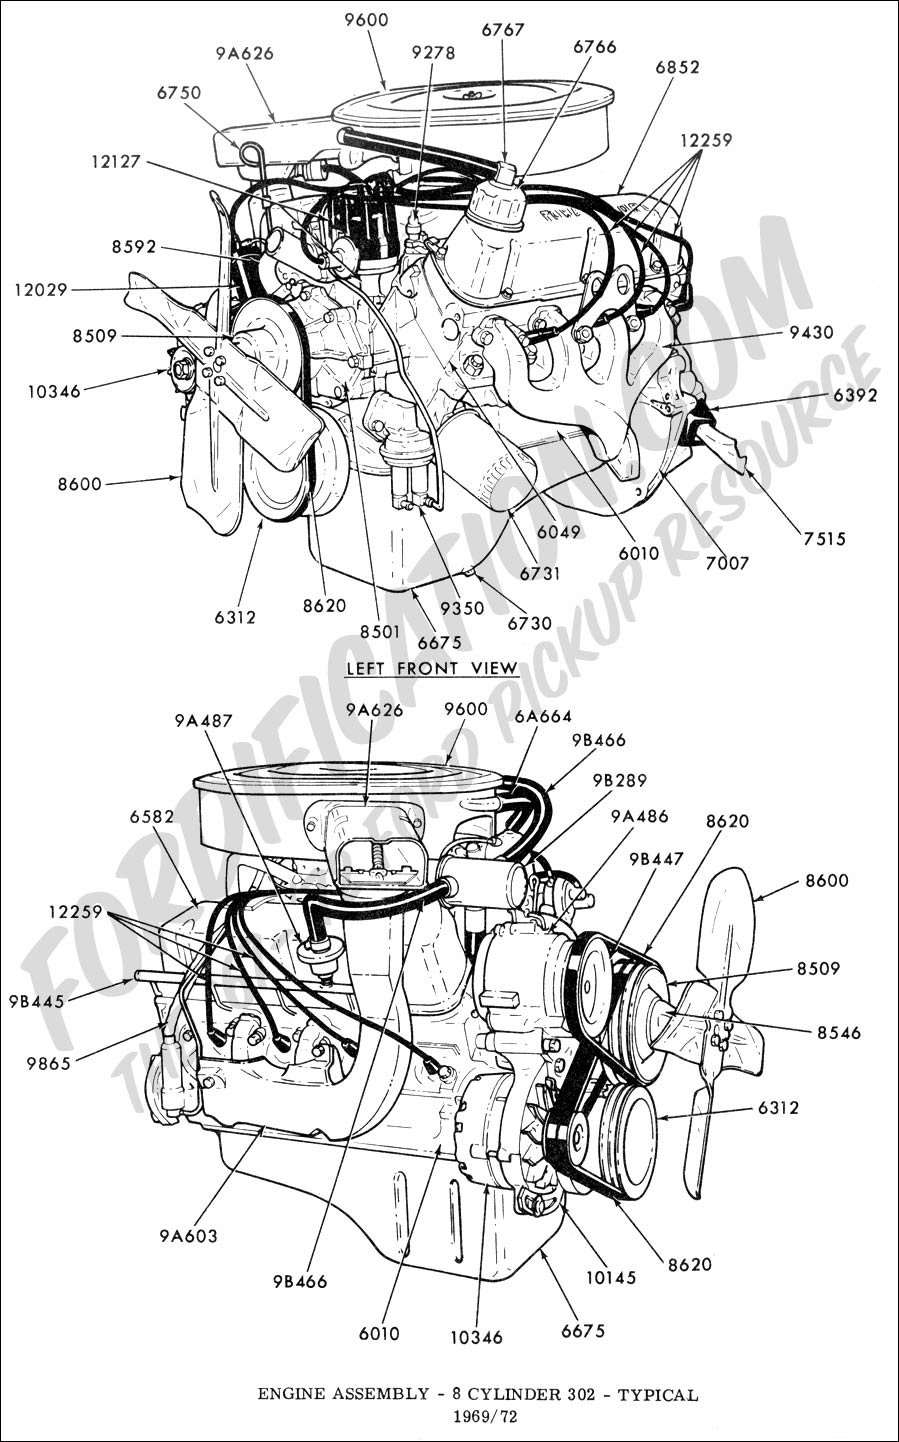 62E9 92 Ford F 150 Exploded Engine Diagram | Wiring Resources  Ford F Exploded Engine Diagram on 92 nissan maxima engine diagram, 1998 ford f-150 engine diagram, 92 honda civic engine diagram, 92 chevy s10 engine diagram, 92 jeep wrangler engine diagram, 92 subaru legacy engine diagram, 92 honda accord engine diagram, 92 nissan sentra engine diagram, 92 jeep cherokee engine diagram,